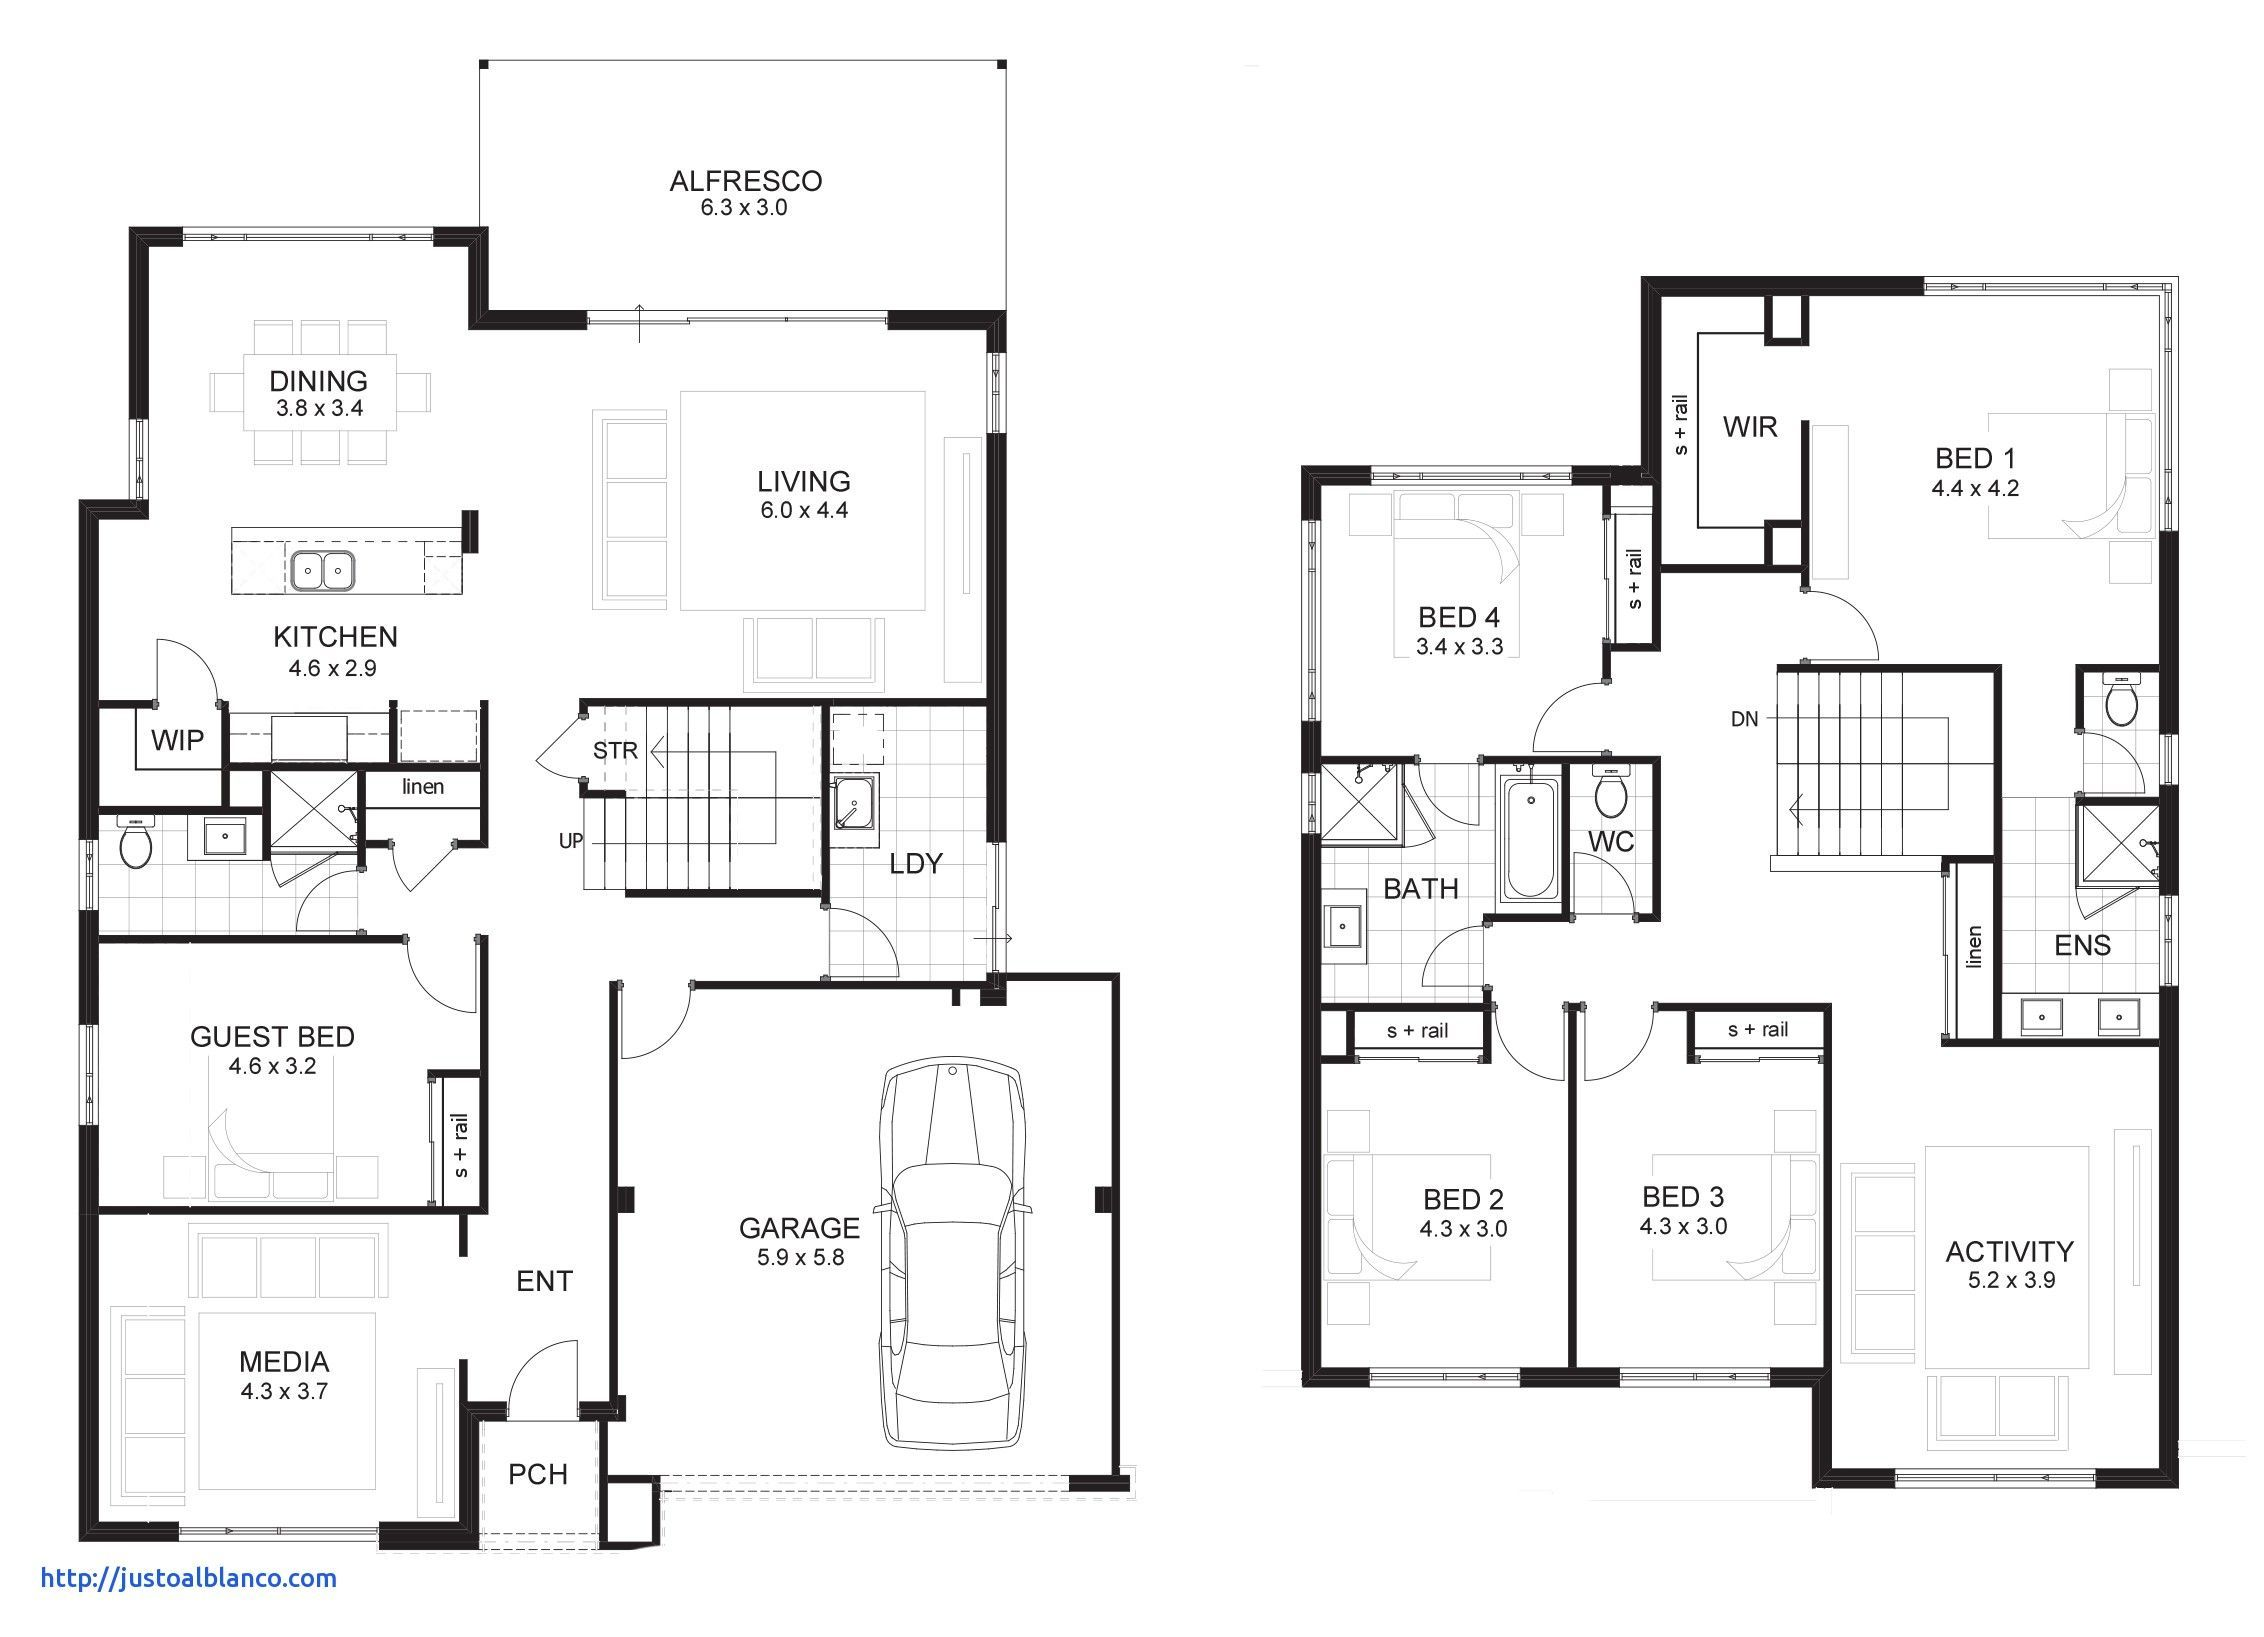 Lovely Simple 5 Bedroom House Plans Lovely Apartments Simple 5